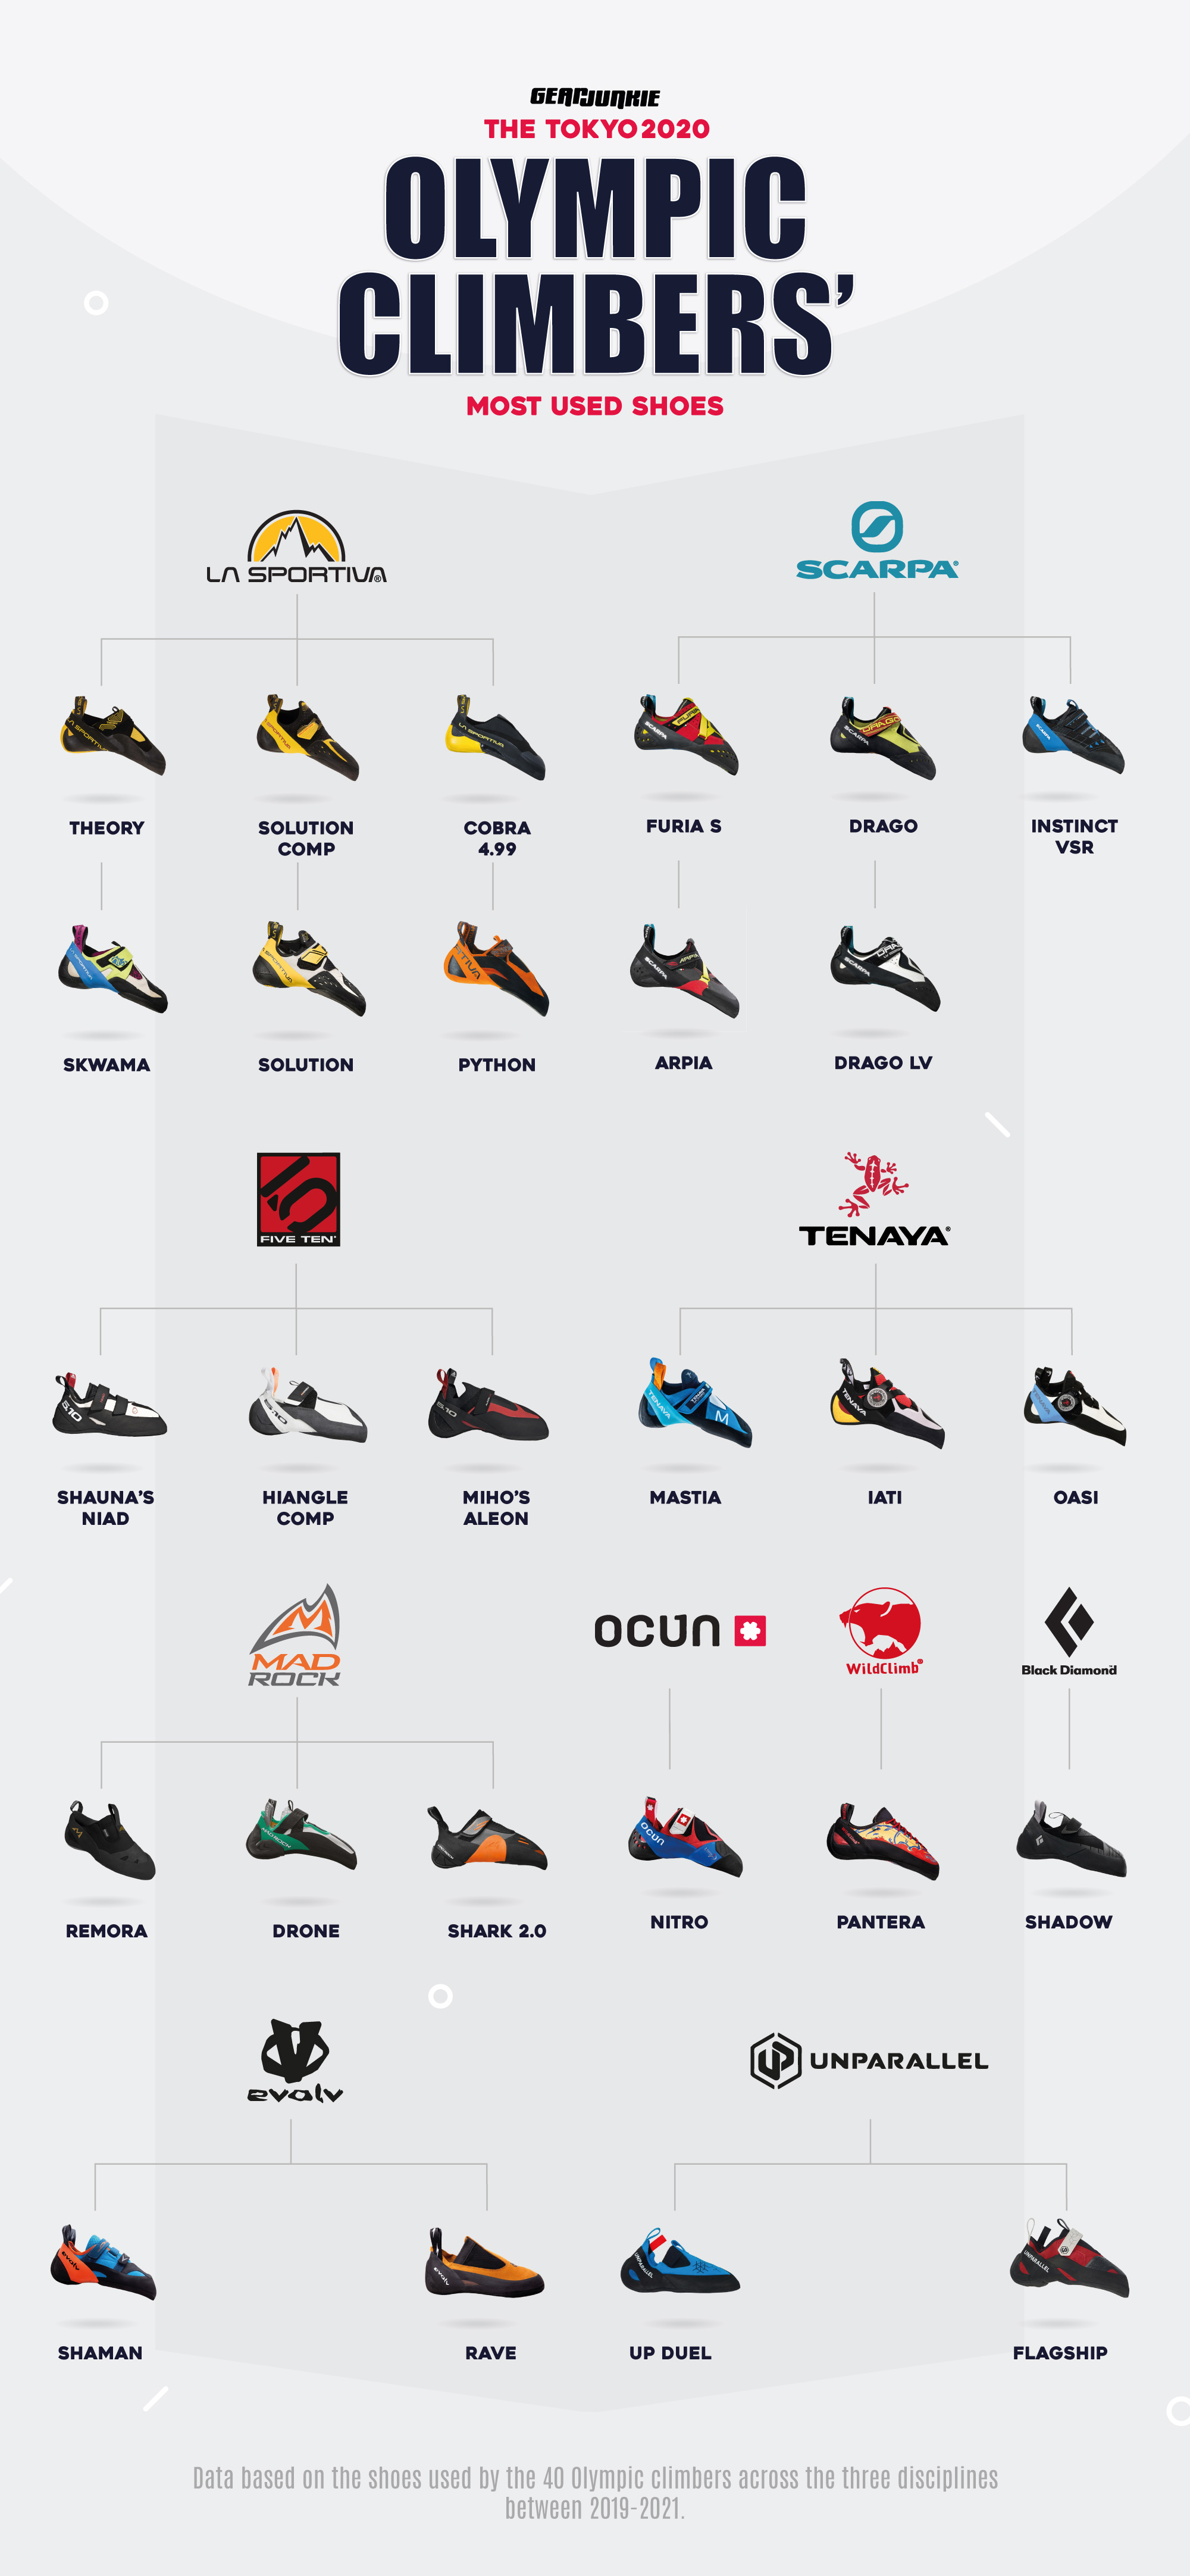 most used climbing shoes at tokyo olympics